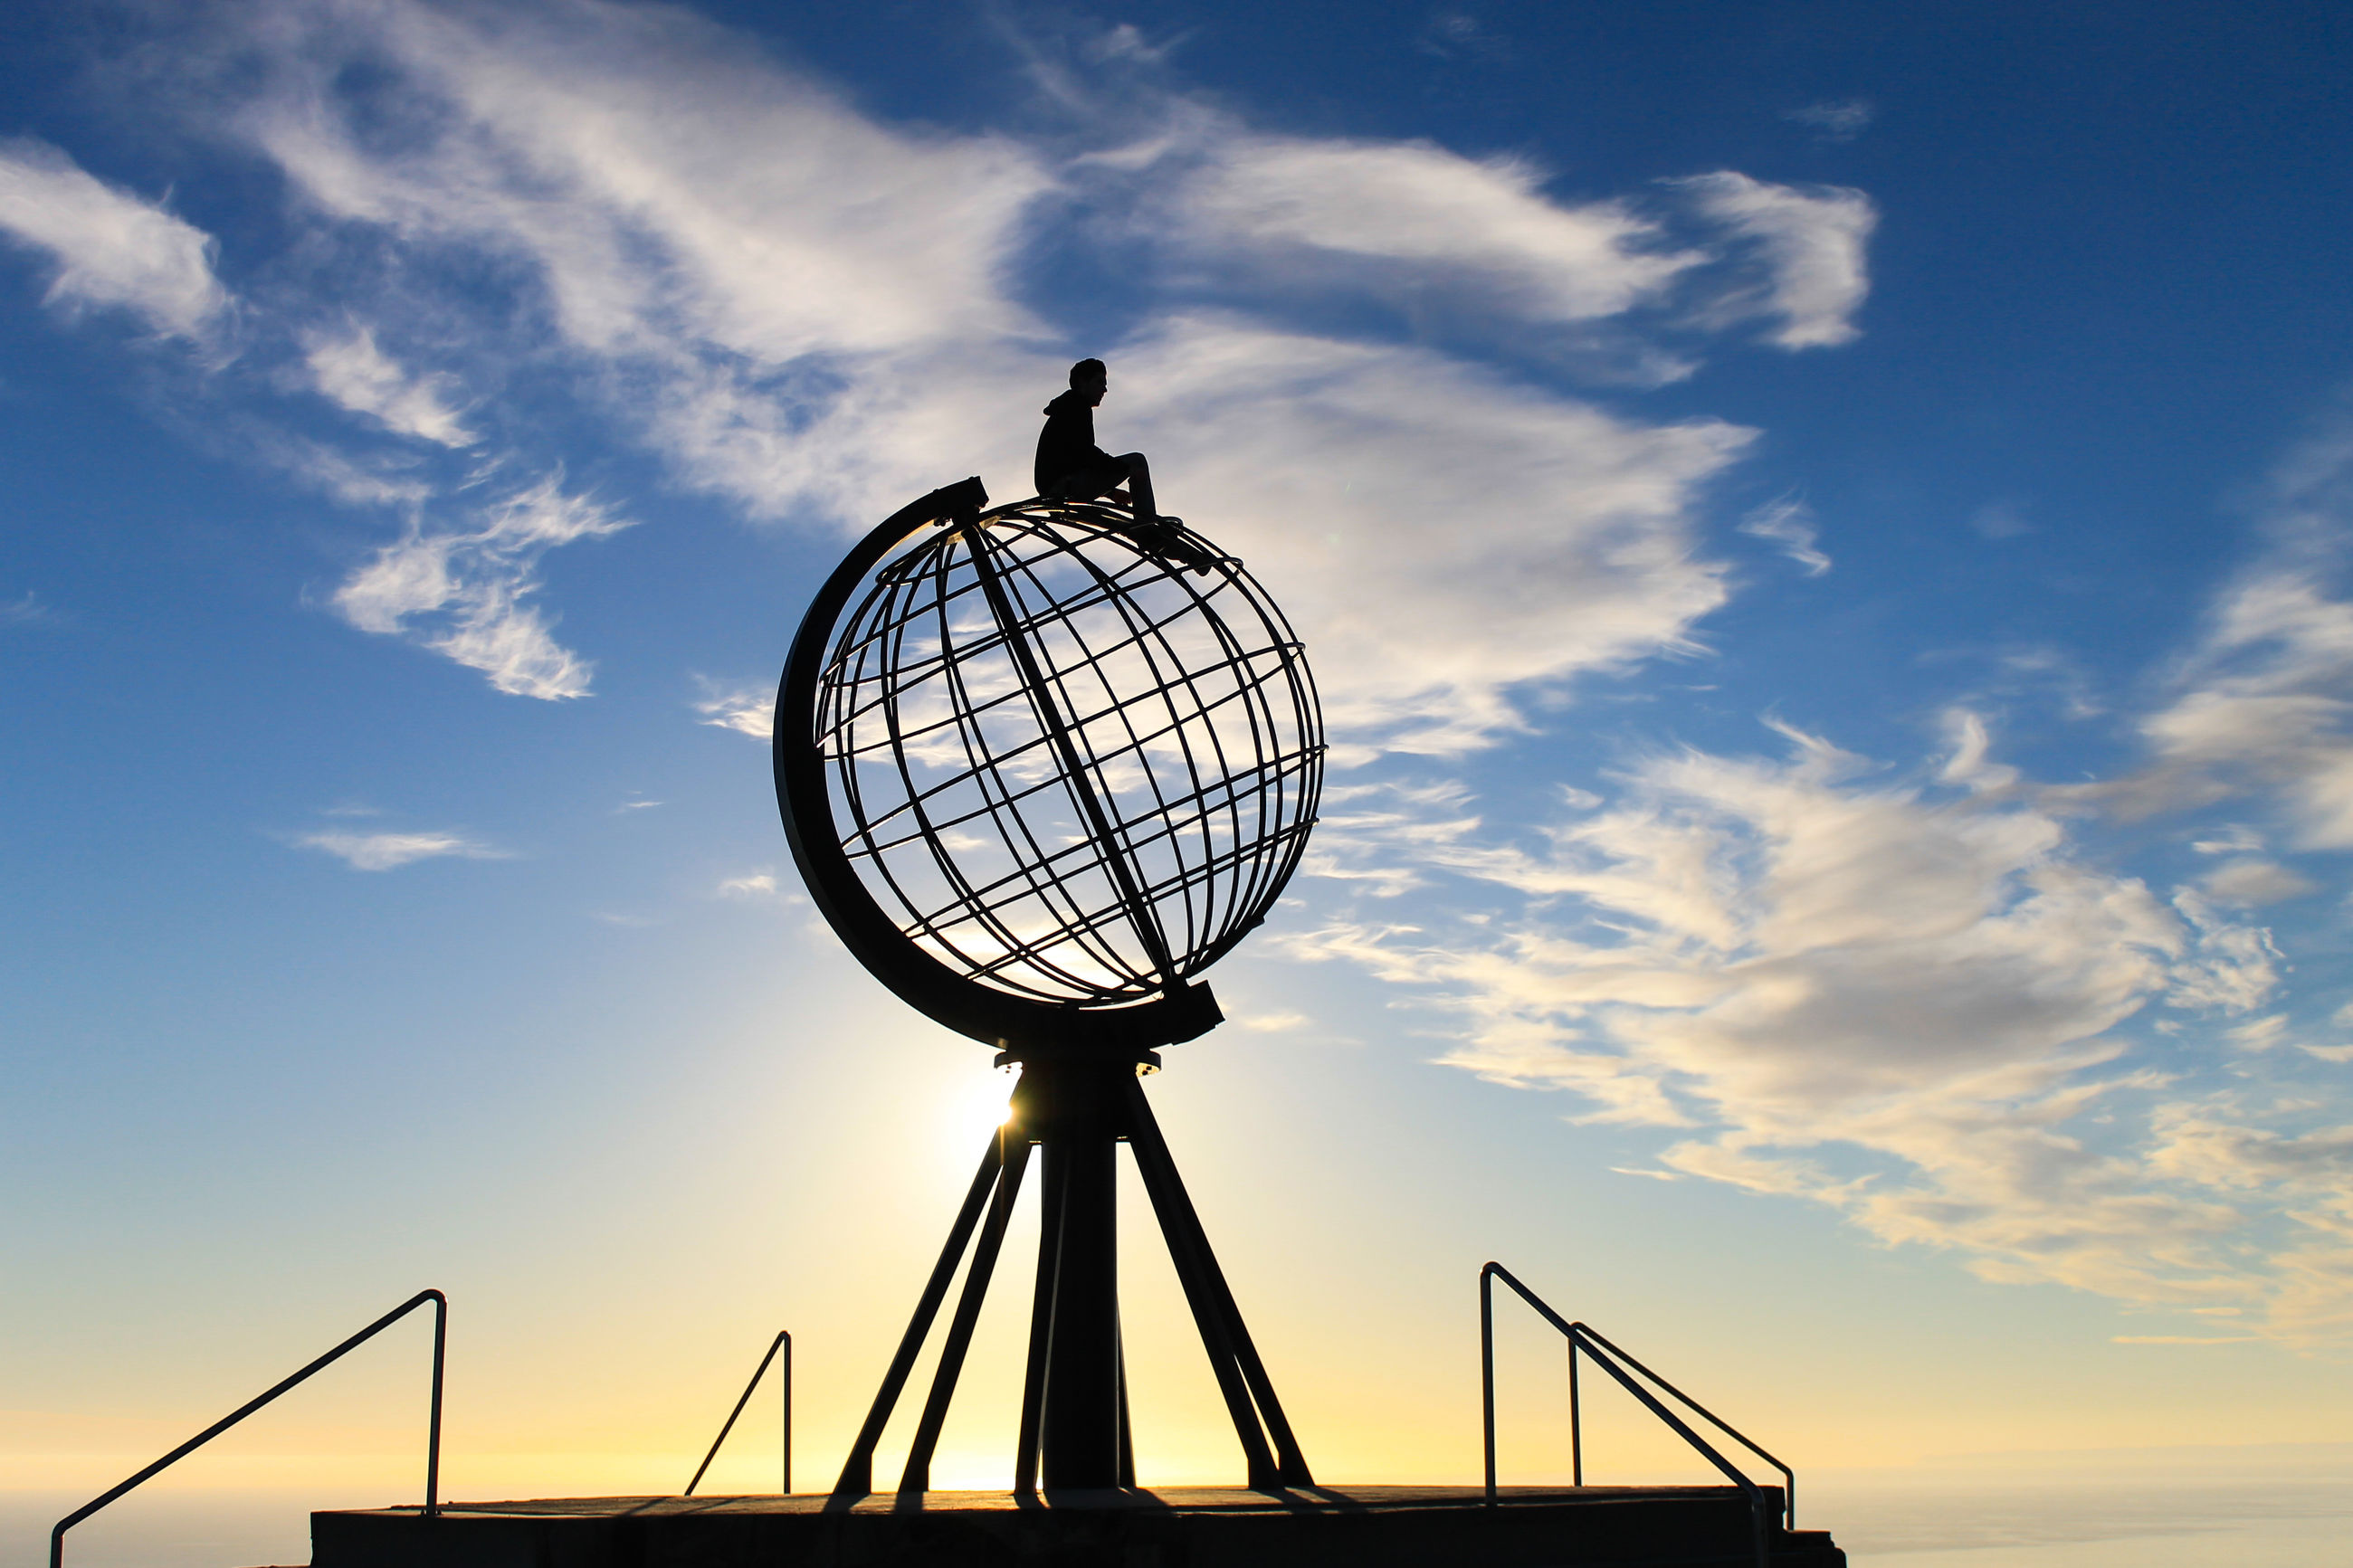 Low angle view of silhouette person sitting on metallic globe against sky during sunset